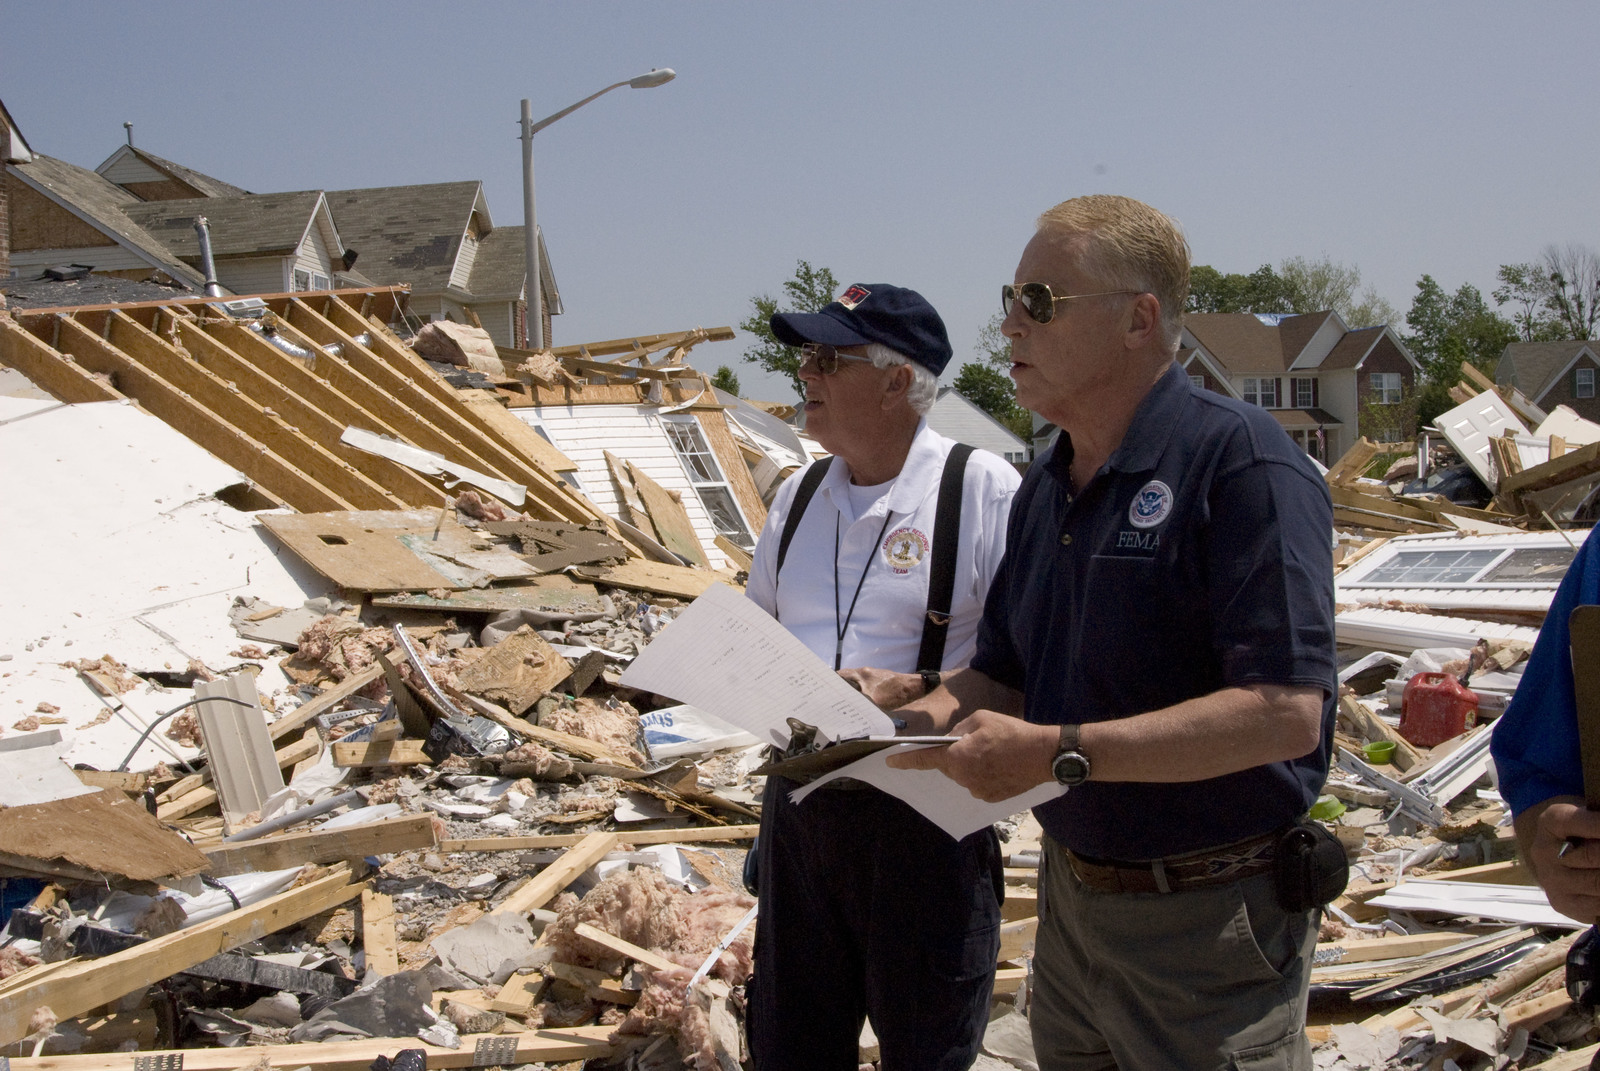 Sufflok, VA, 5/01/2008 --  FEMA specialist Joe Pickering with Bill Young from the Small Business Administration look at damage as they do a preliminary damage assessment in the Hillpoint subdivision that was hit by a severe tornado a few days ago. Photo By: Liz Roll/FEMA